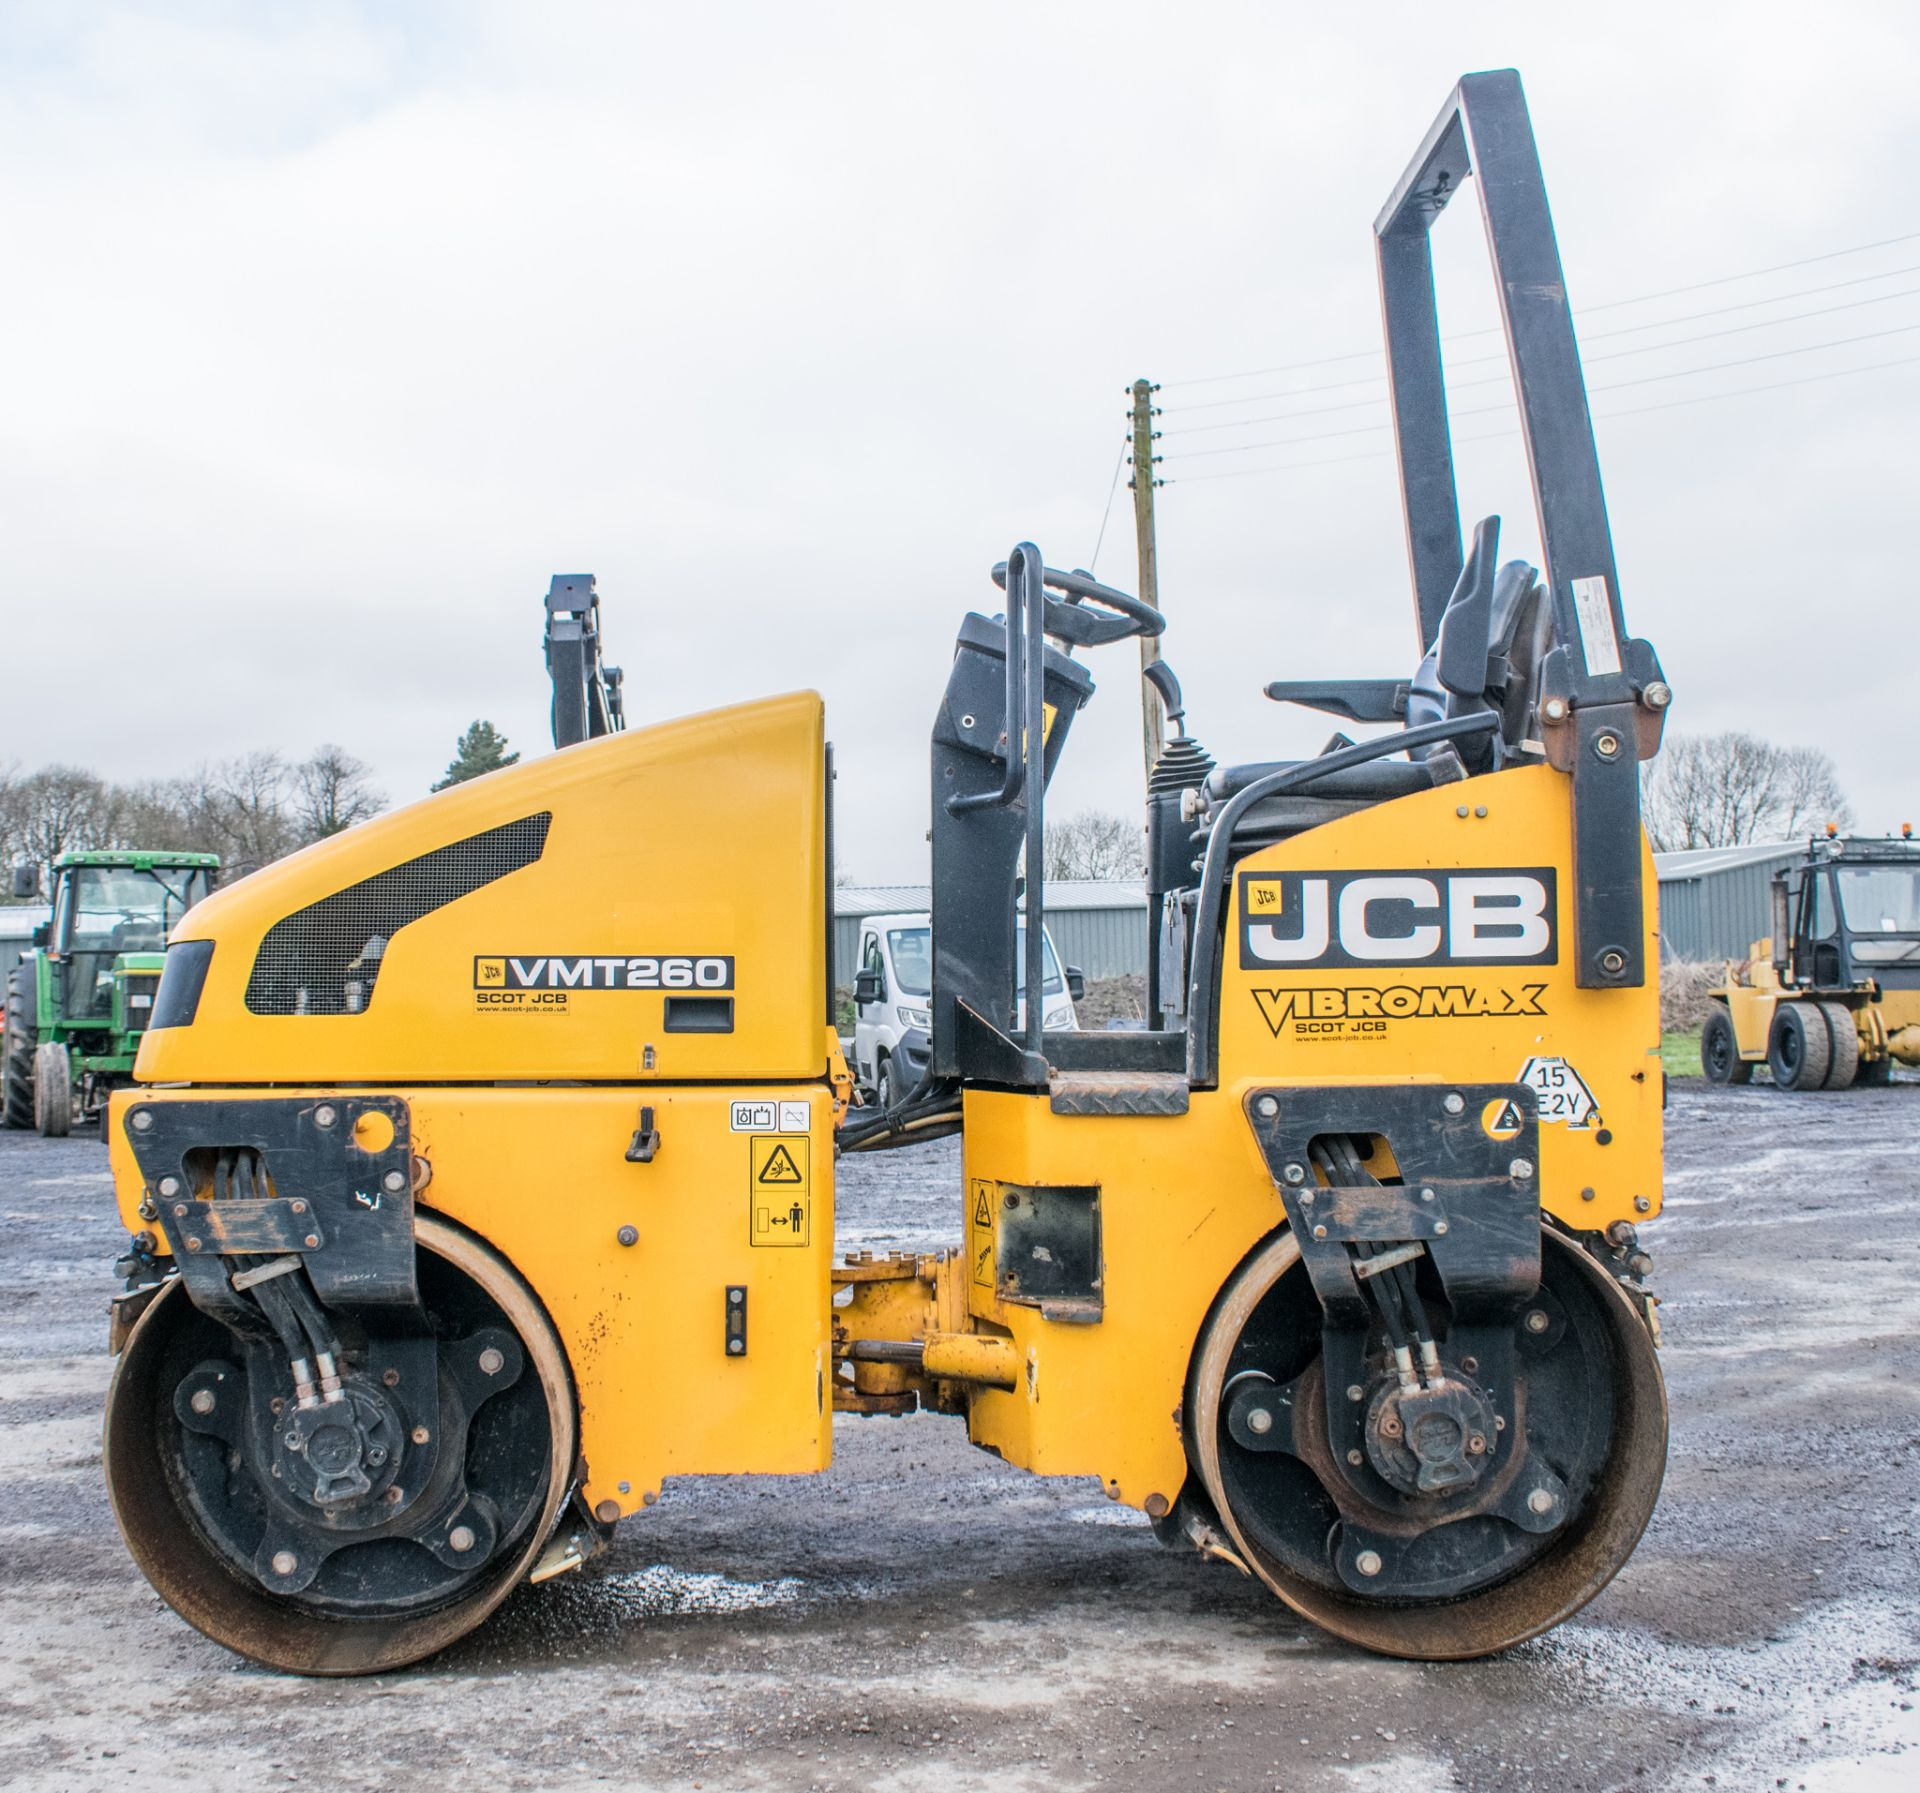 Lot 48 - JCB VMT 260 double drum ride on roller Year: 2012 S/N 2803332 Recorded hours: 927